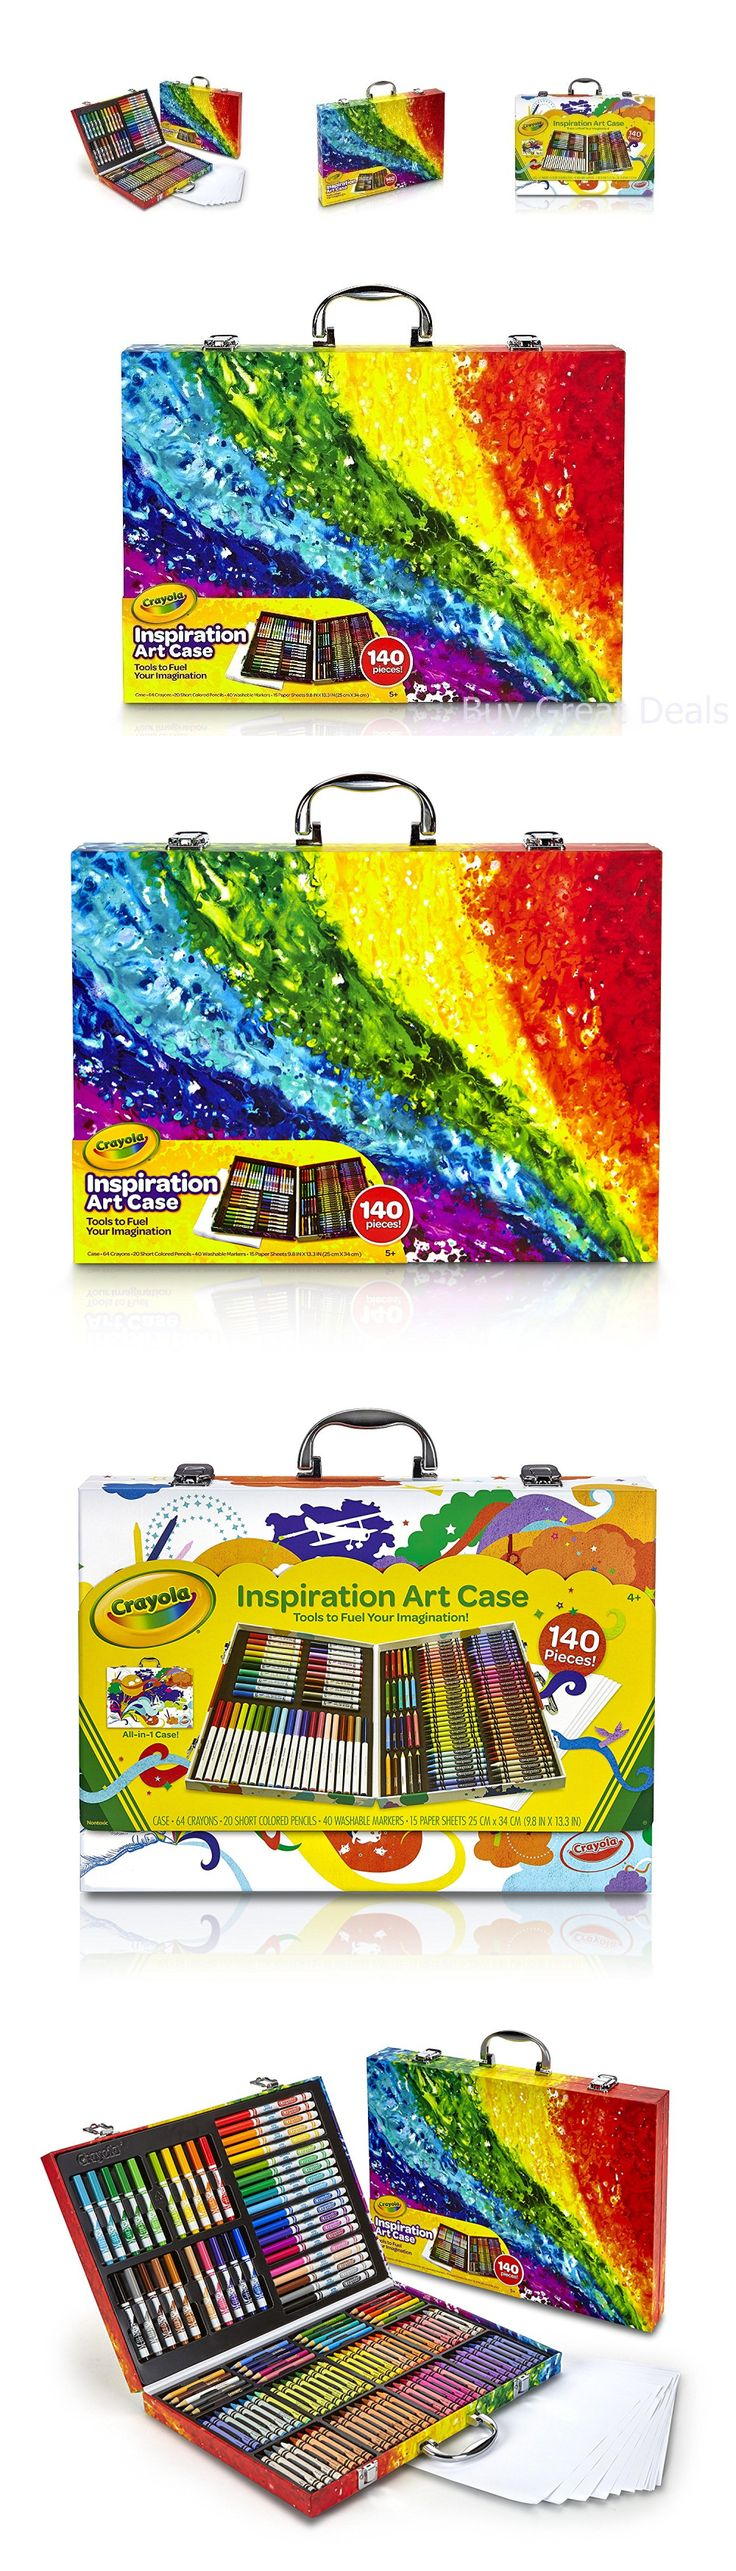 Crayon melting art images amp pictures becuo - Crayons 116653 Crayola Art Case Tools 140 Pieces Crayons Colored Pencils Washable Markers New